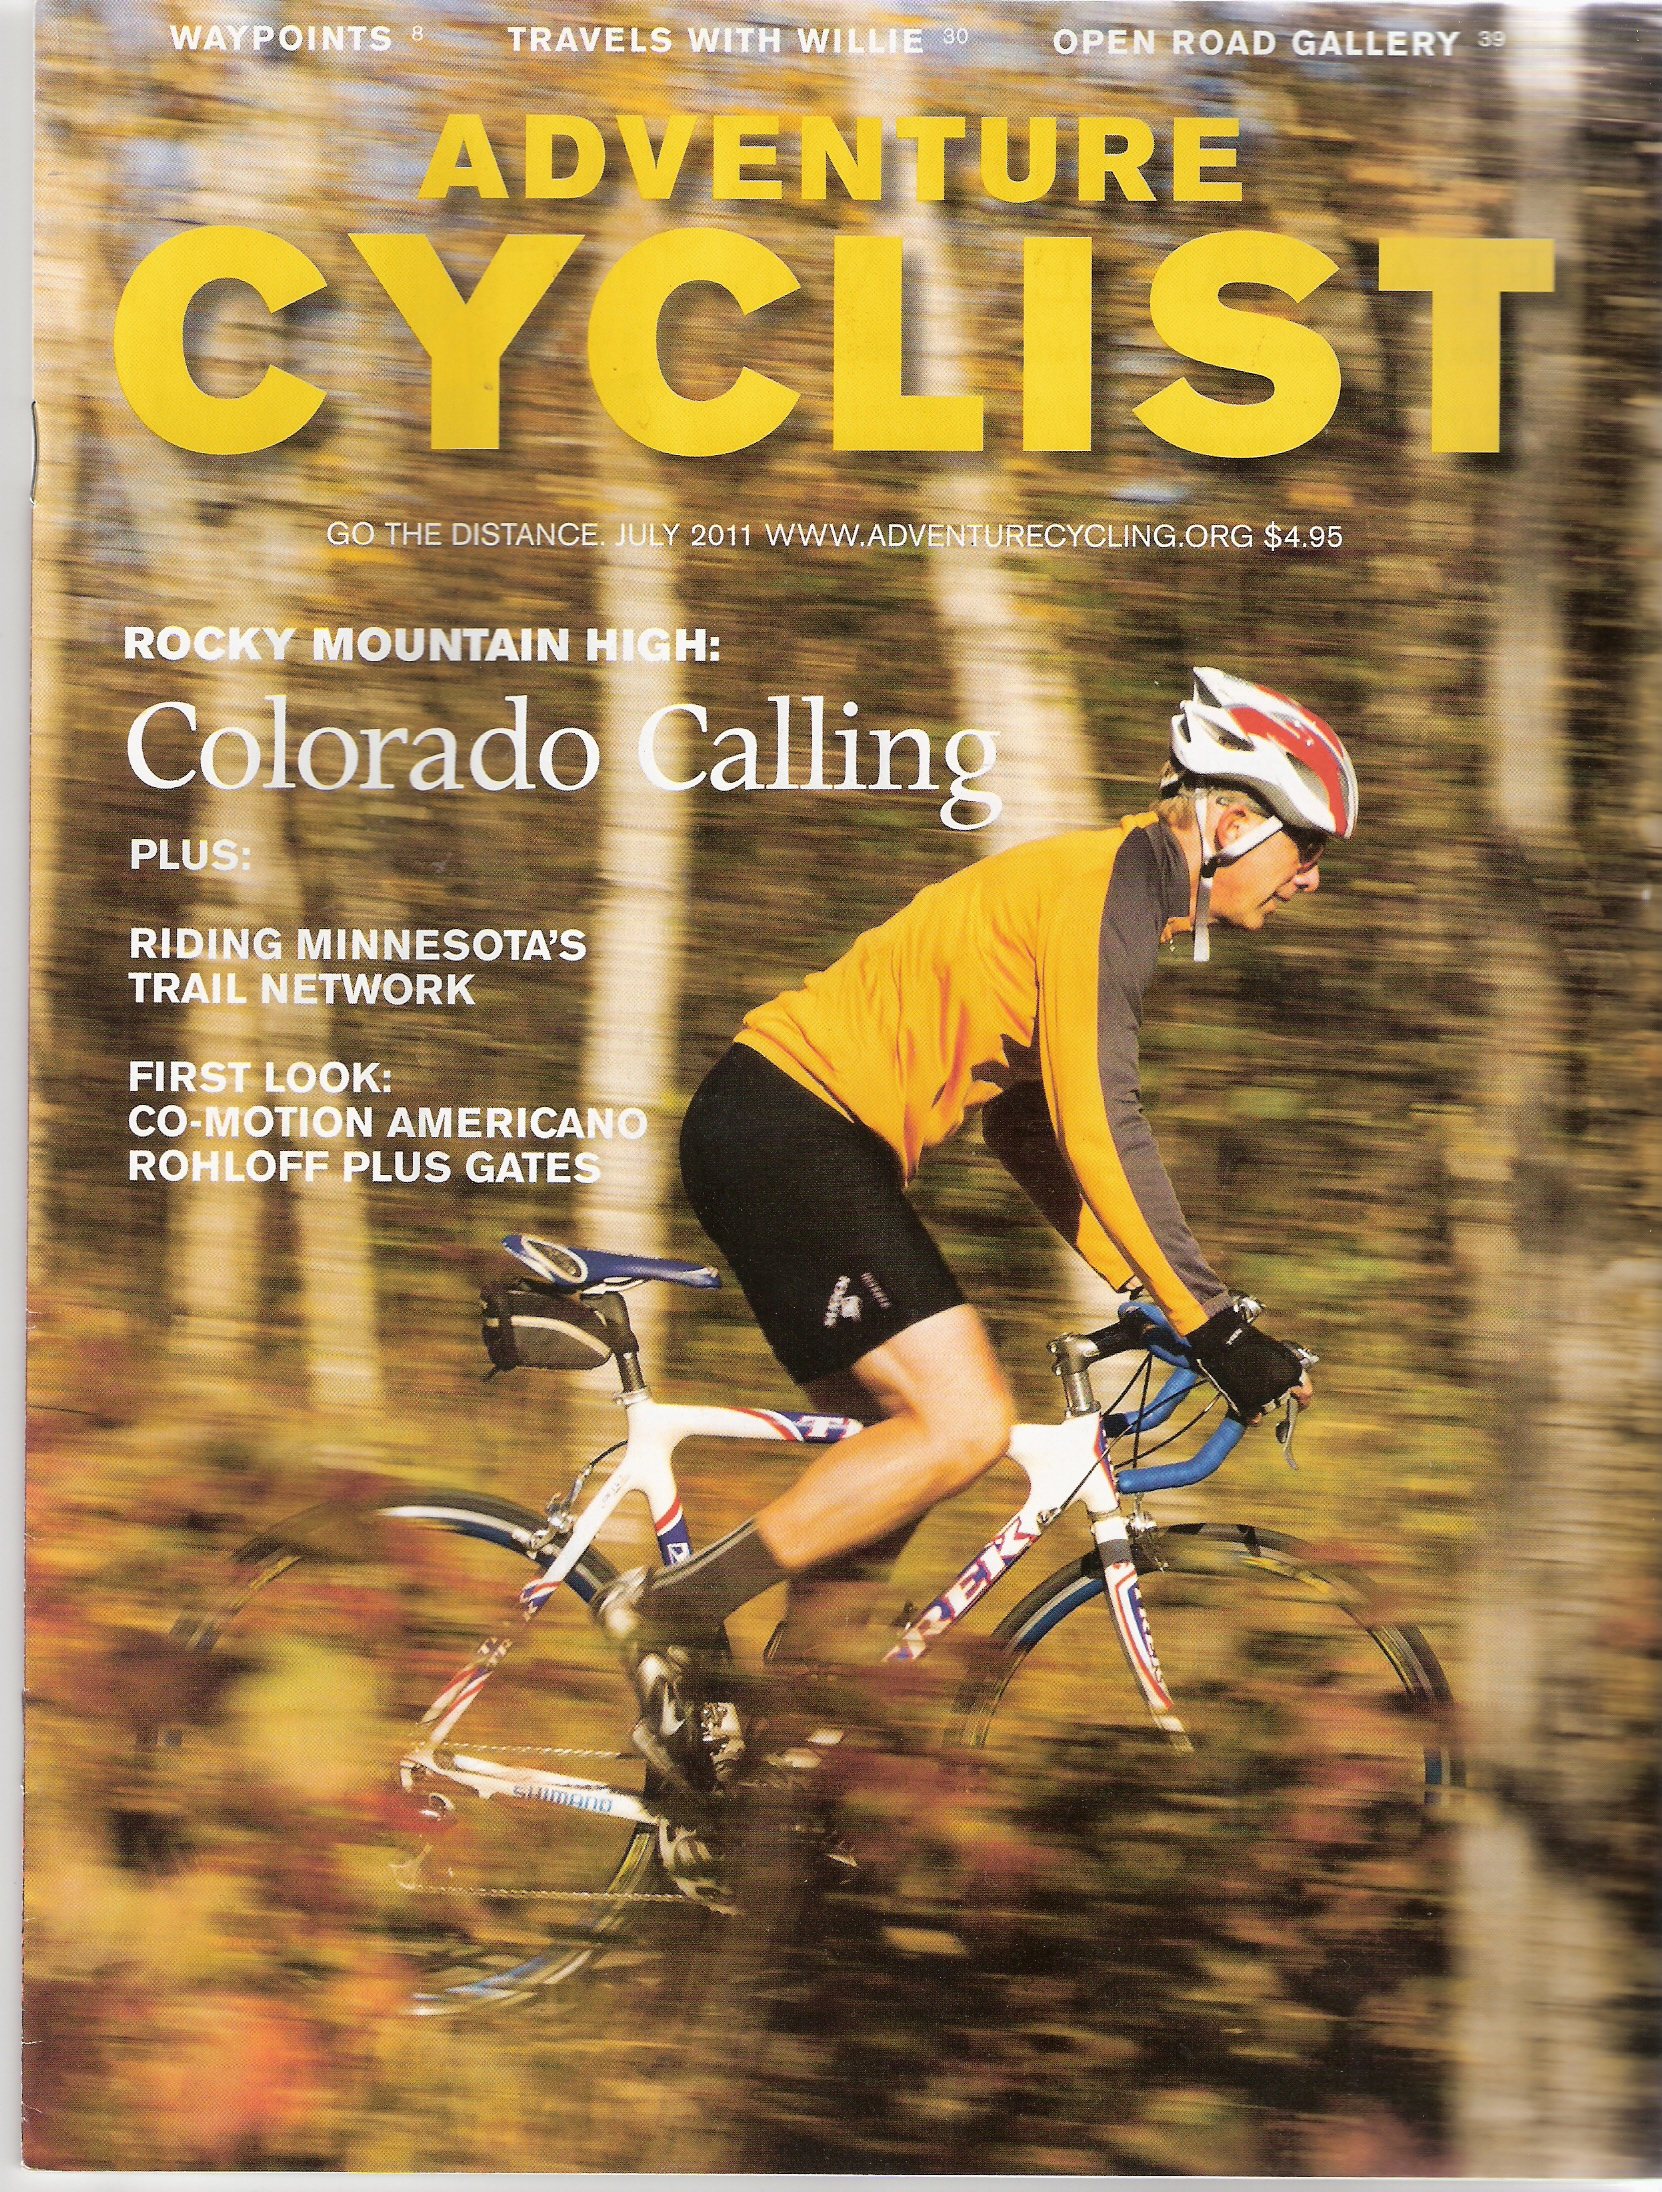 Adventure Cyclist Magazine highlights the Co-Motion Americano Rohloff bicycle with Gates Carbon Drive.